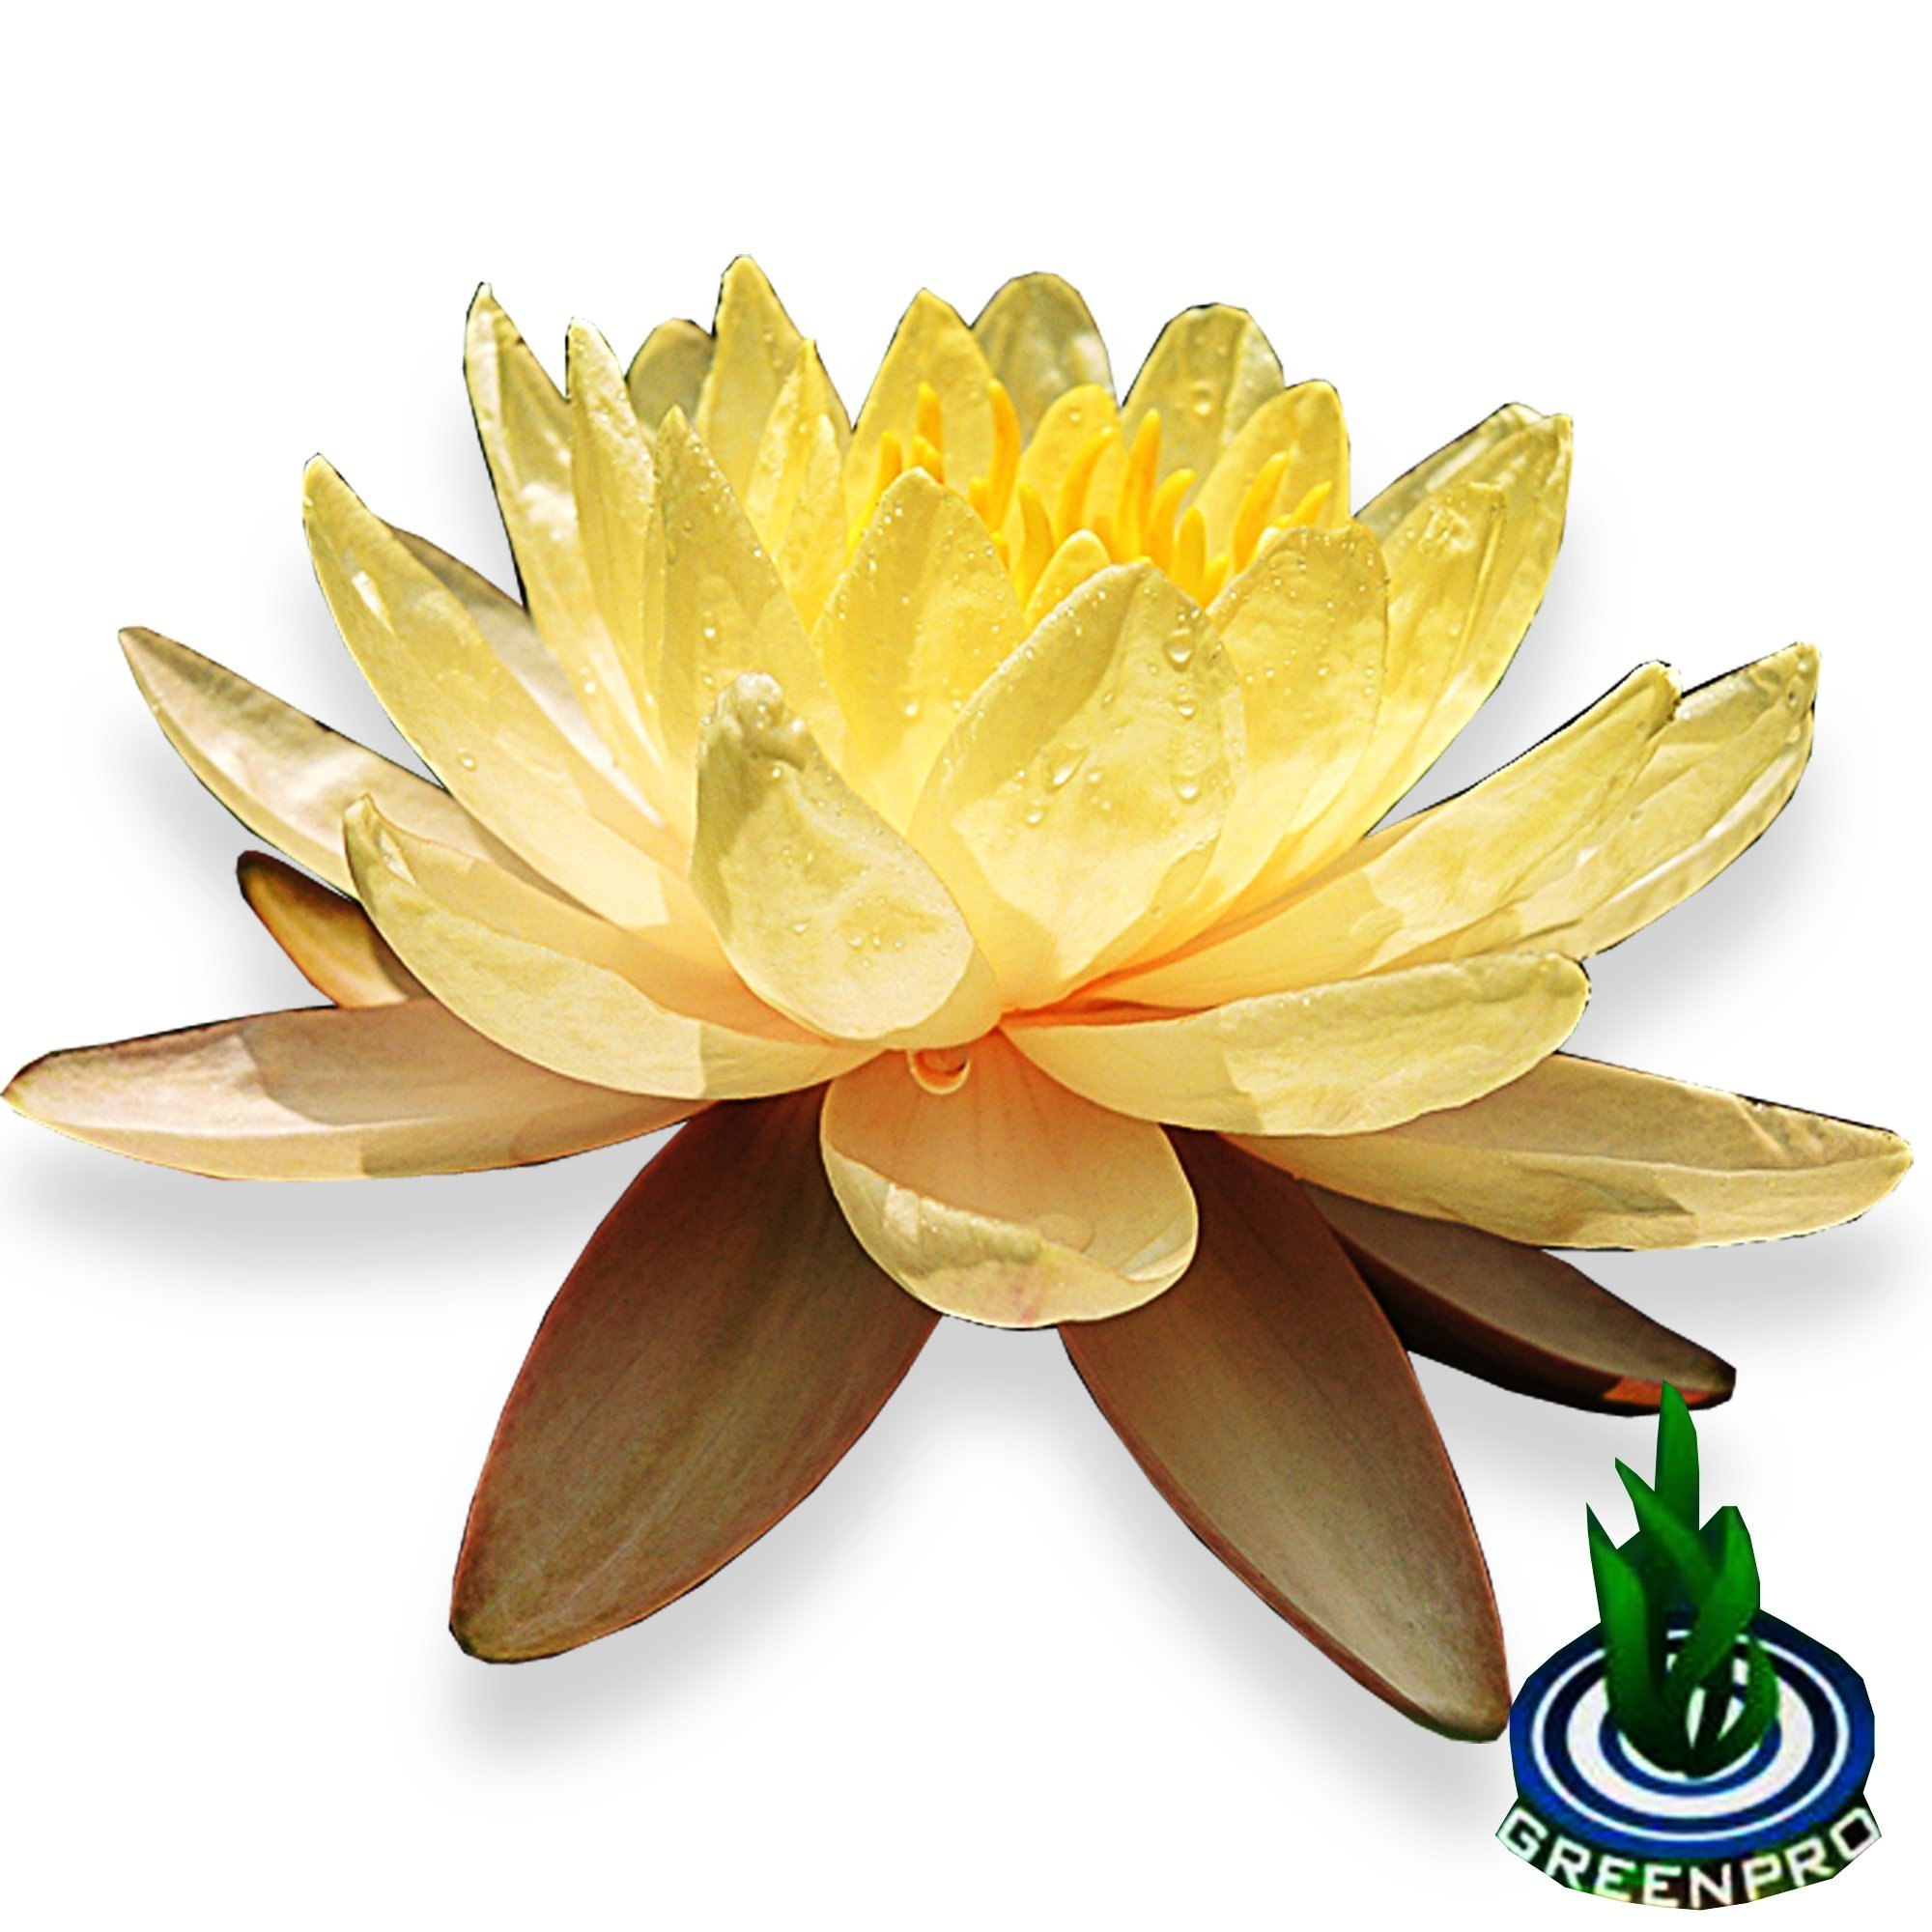 Live Aquatic Plant Yellow Nymphaea Mungkala Ubon Hardy Water Lilies Tuber for Aquarium Freshwater Fish Pond by Greenpro